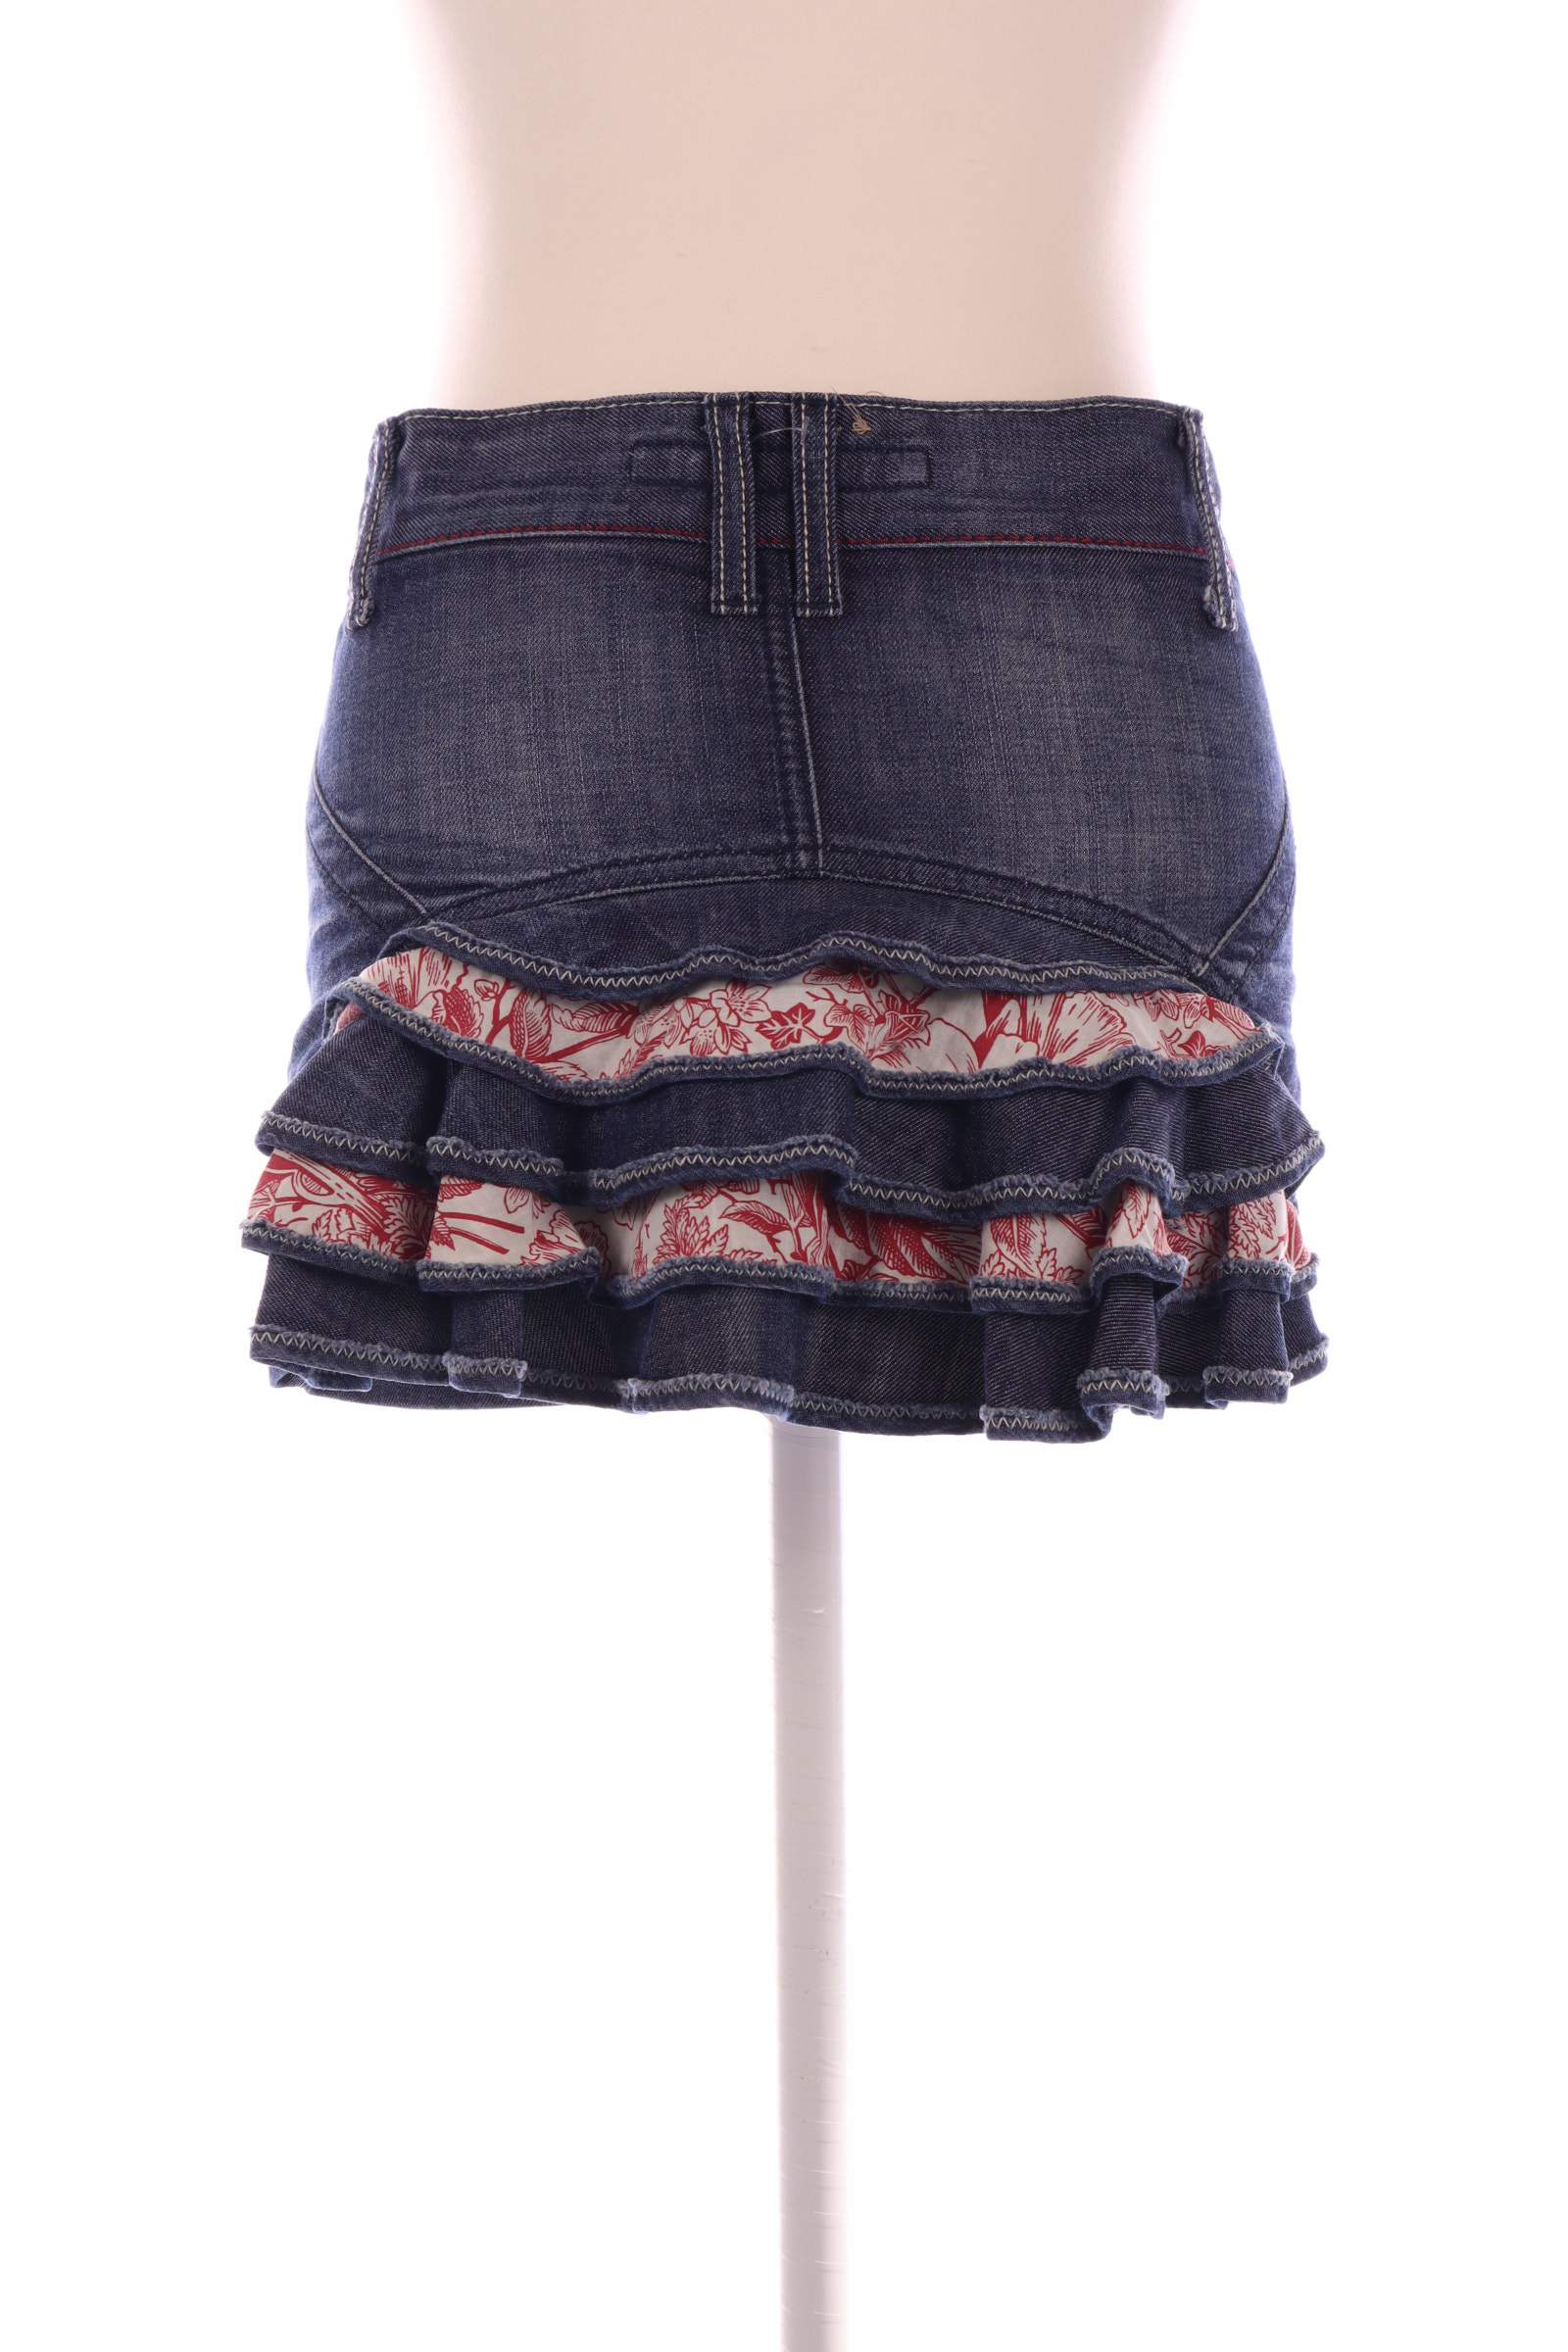 Miss Sixty Blue Skirt - upty.store